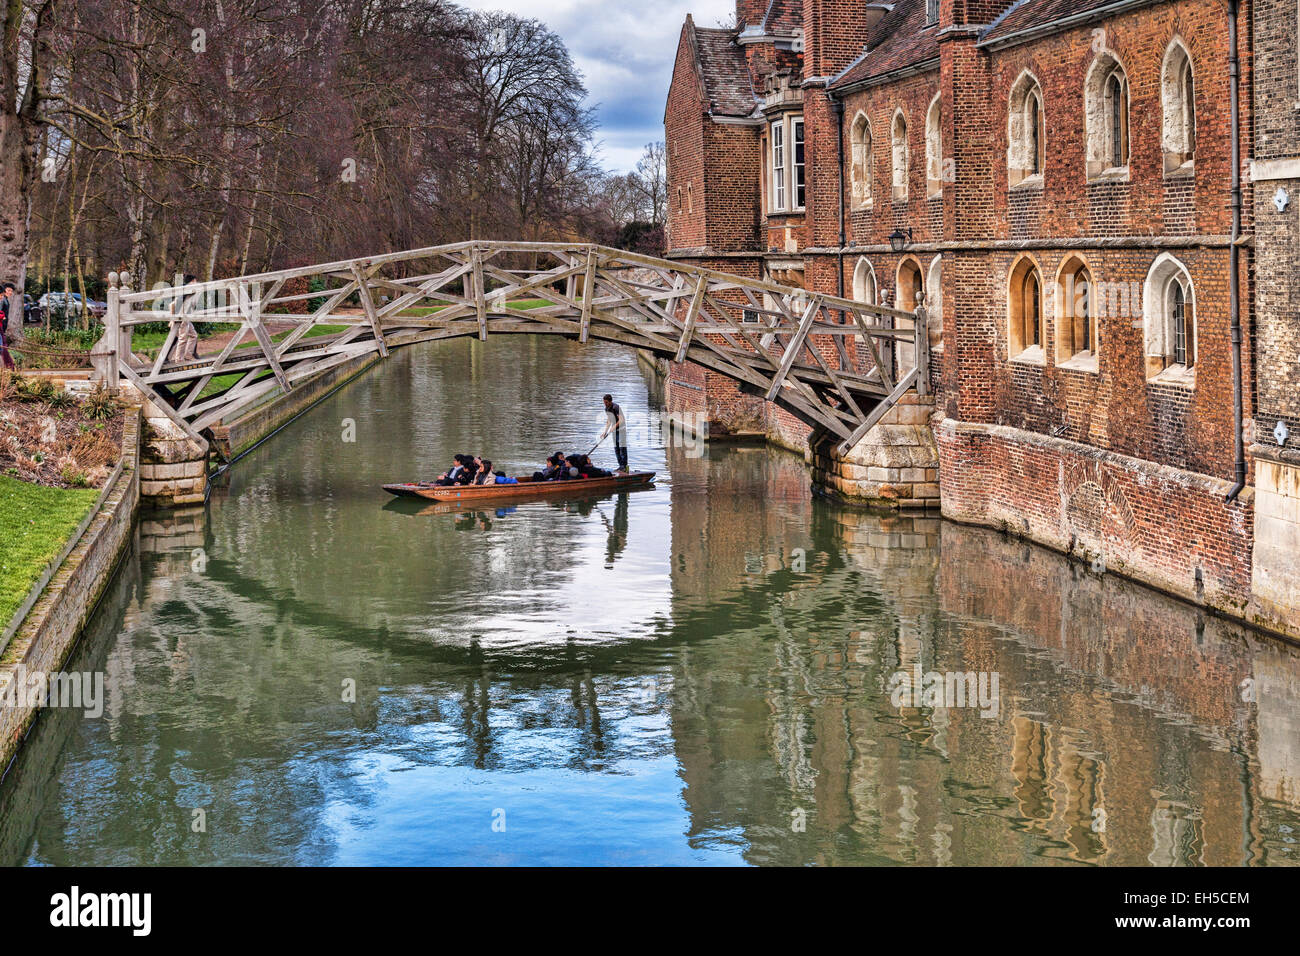 The Mathematical Bridge, Cambridge, which joins two parts of Queens College, with a punt passing underneath. - Stock Image